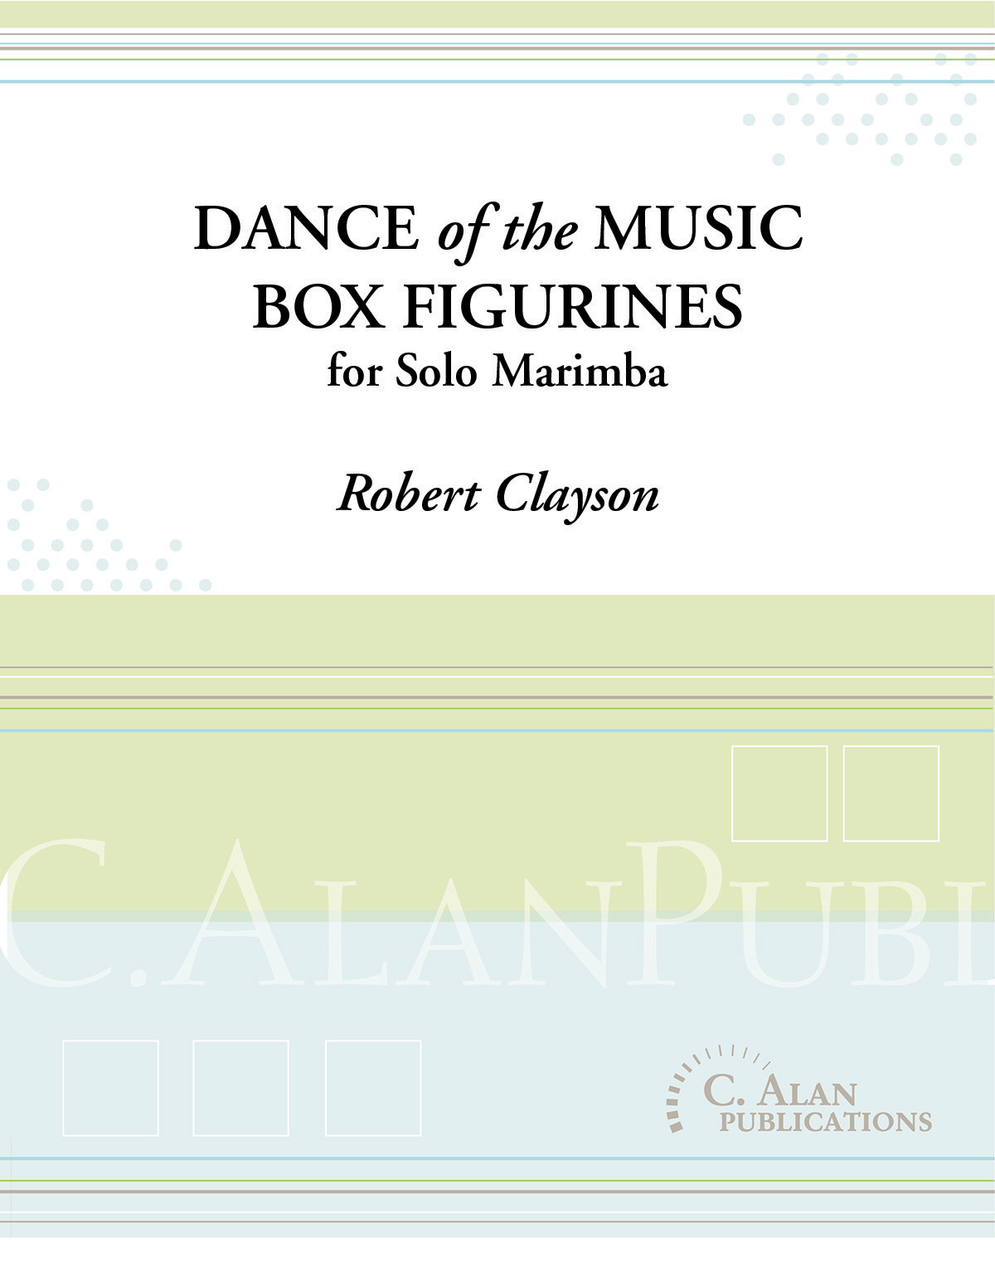 Dance of the Music Box Figurines